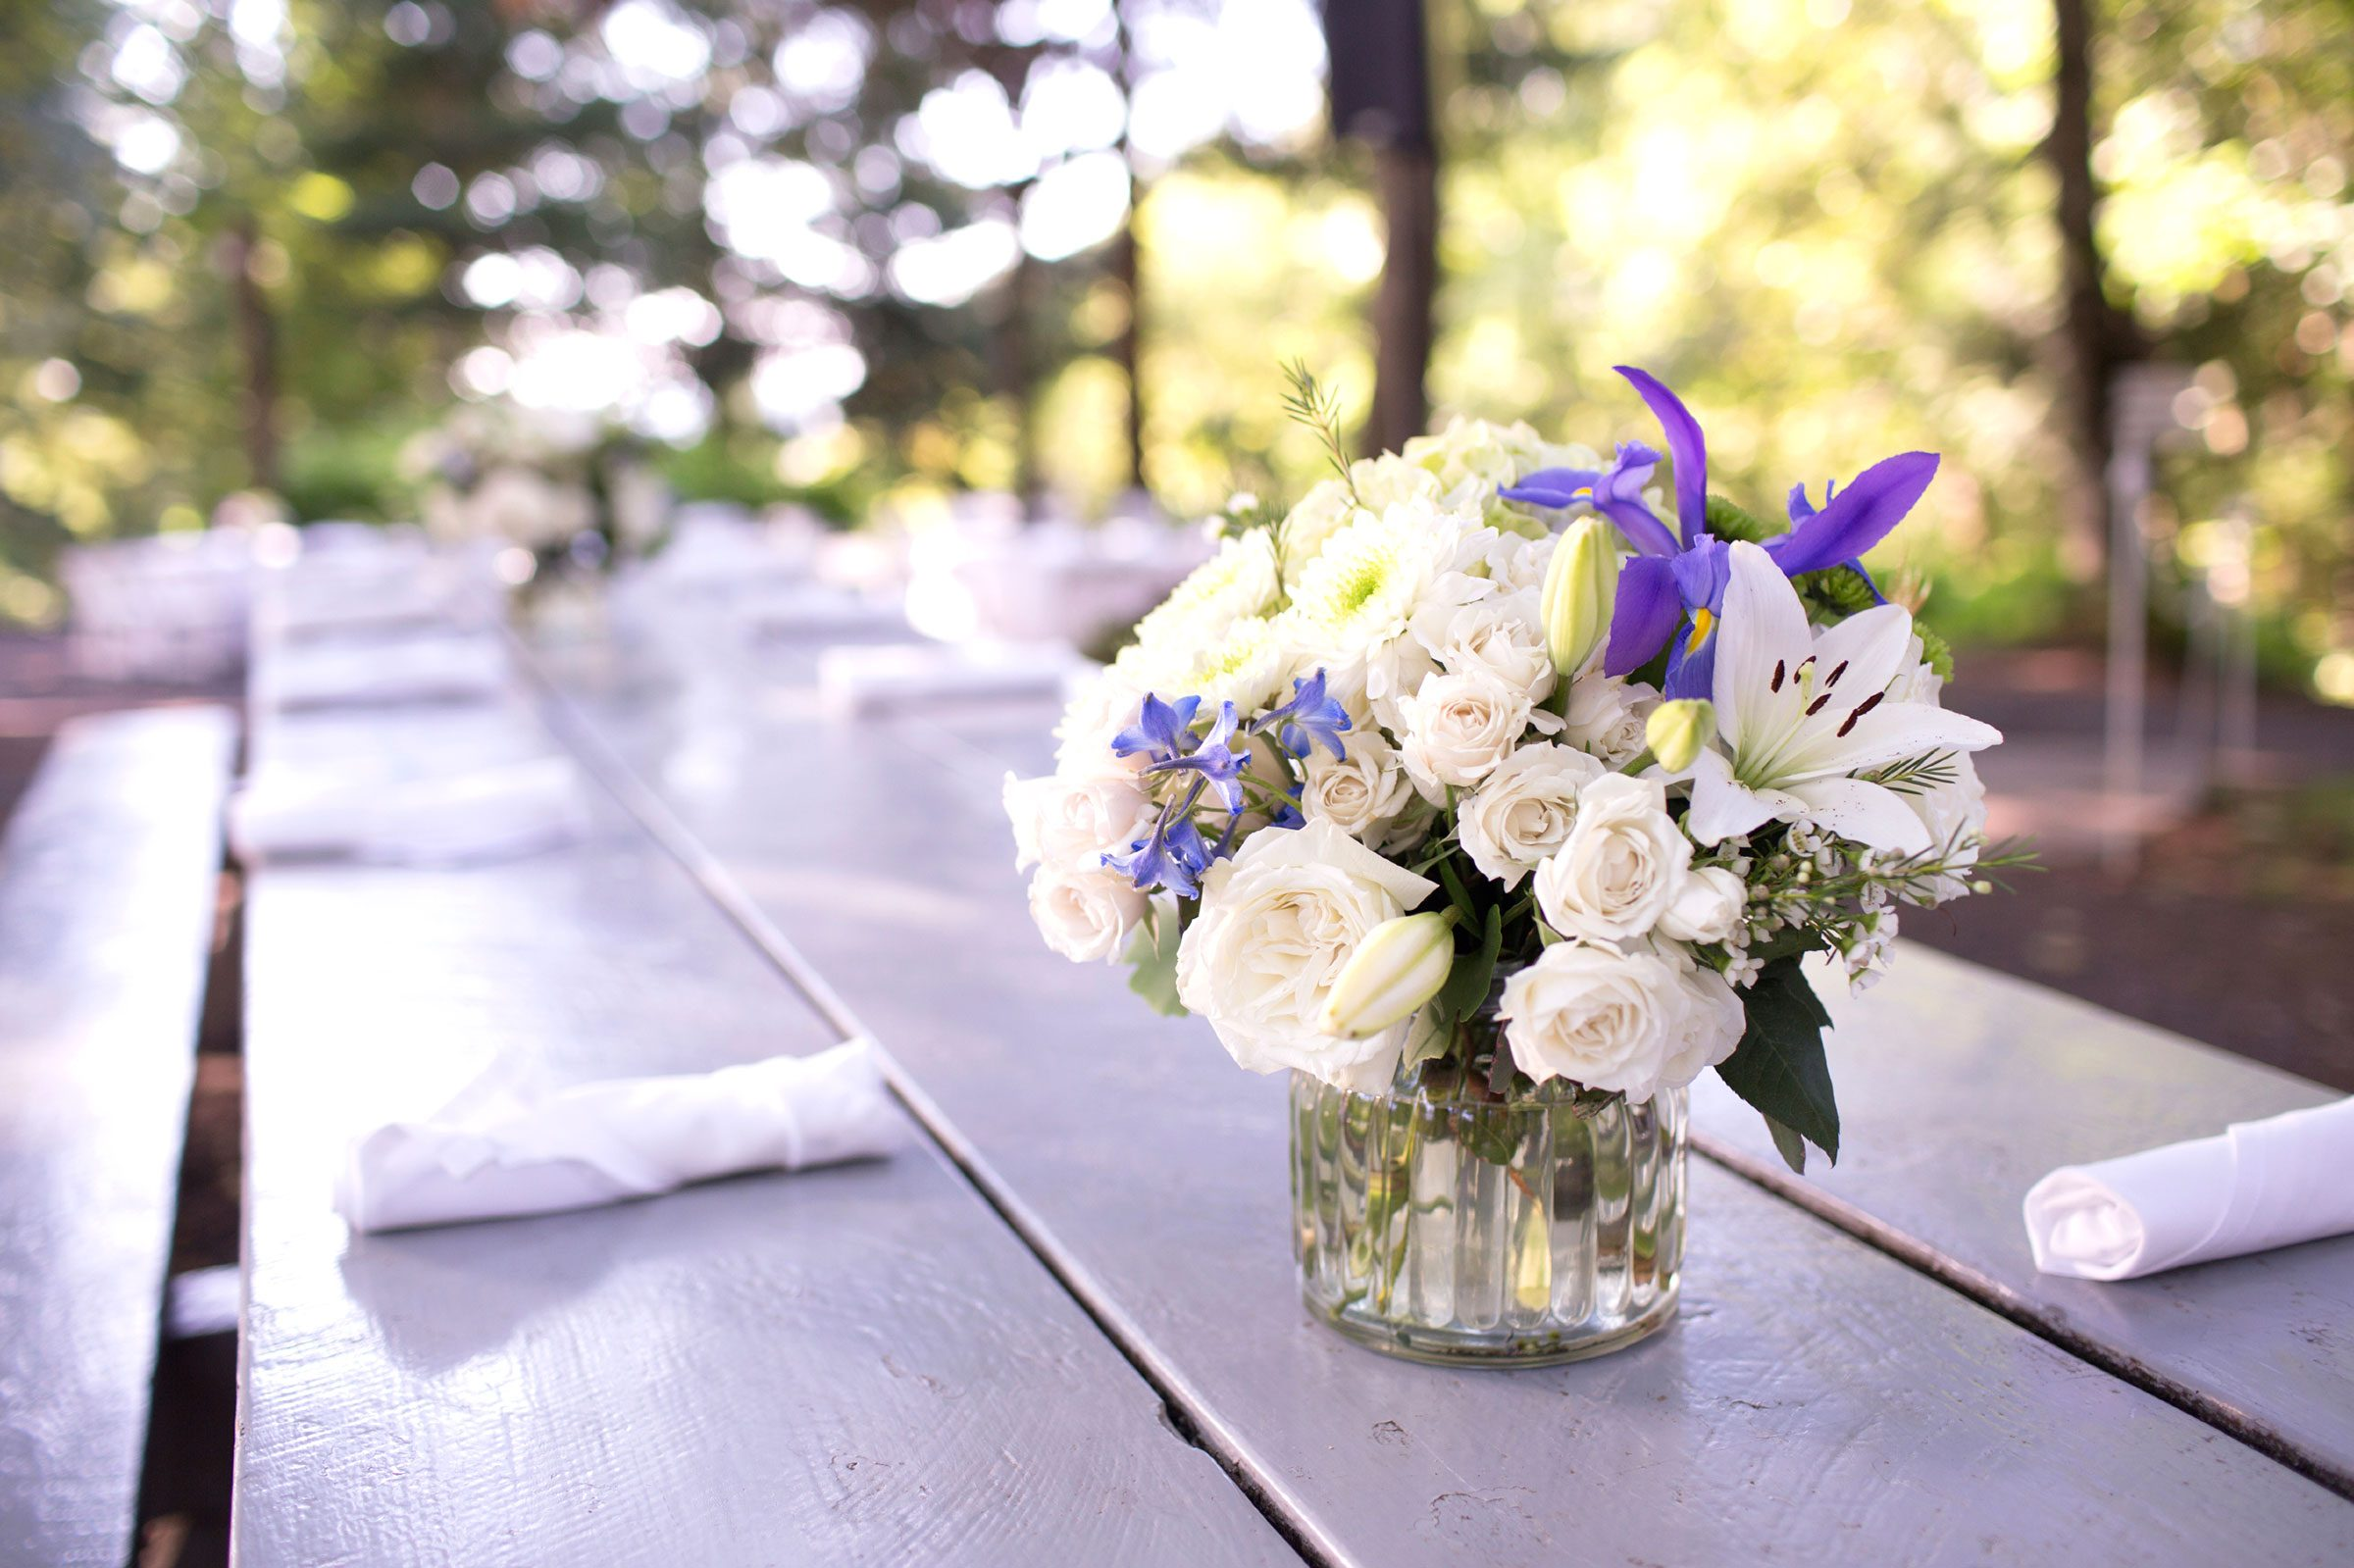 13 things your florist wont tell you readers digest thanks for continuing to buy flowers even in this economy dhlflorist Gallery